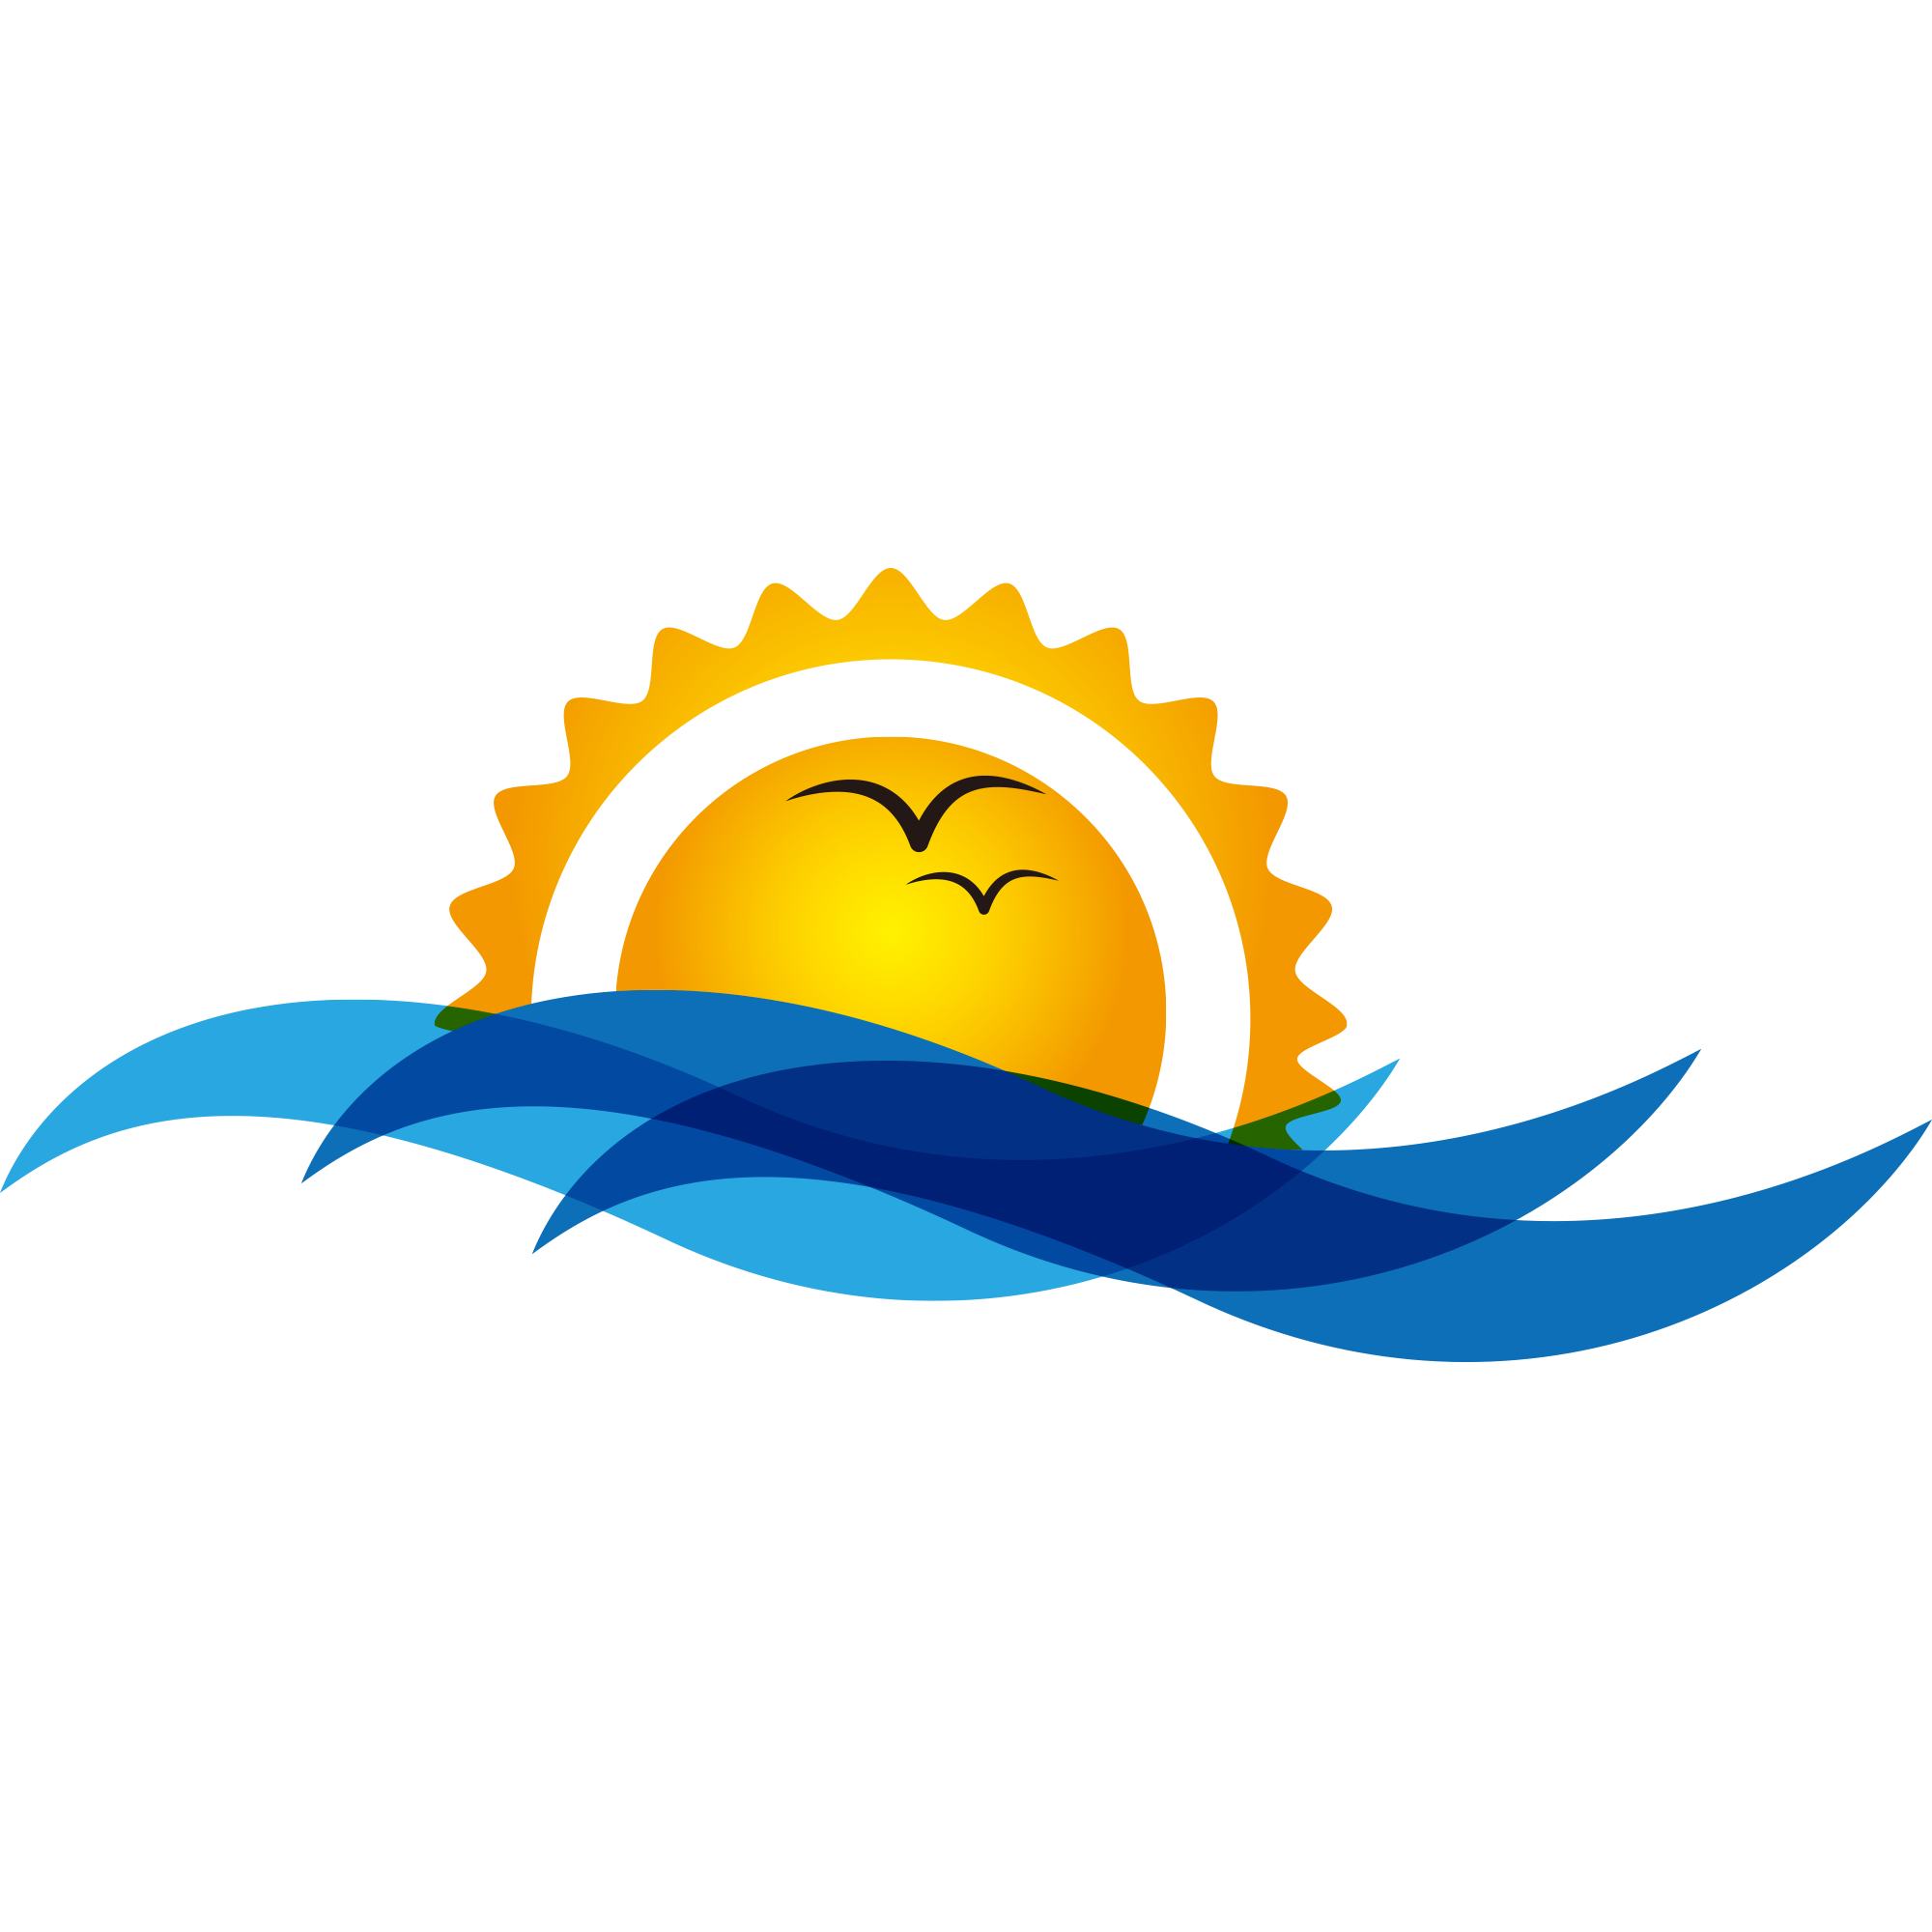 Sun rise with water clipart graphic royalty free download Clipart Sunrise at GetDrawings.com | Free for personal use Clipart ... graphic royalty free download